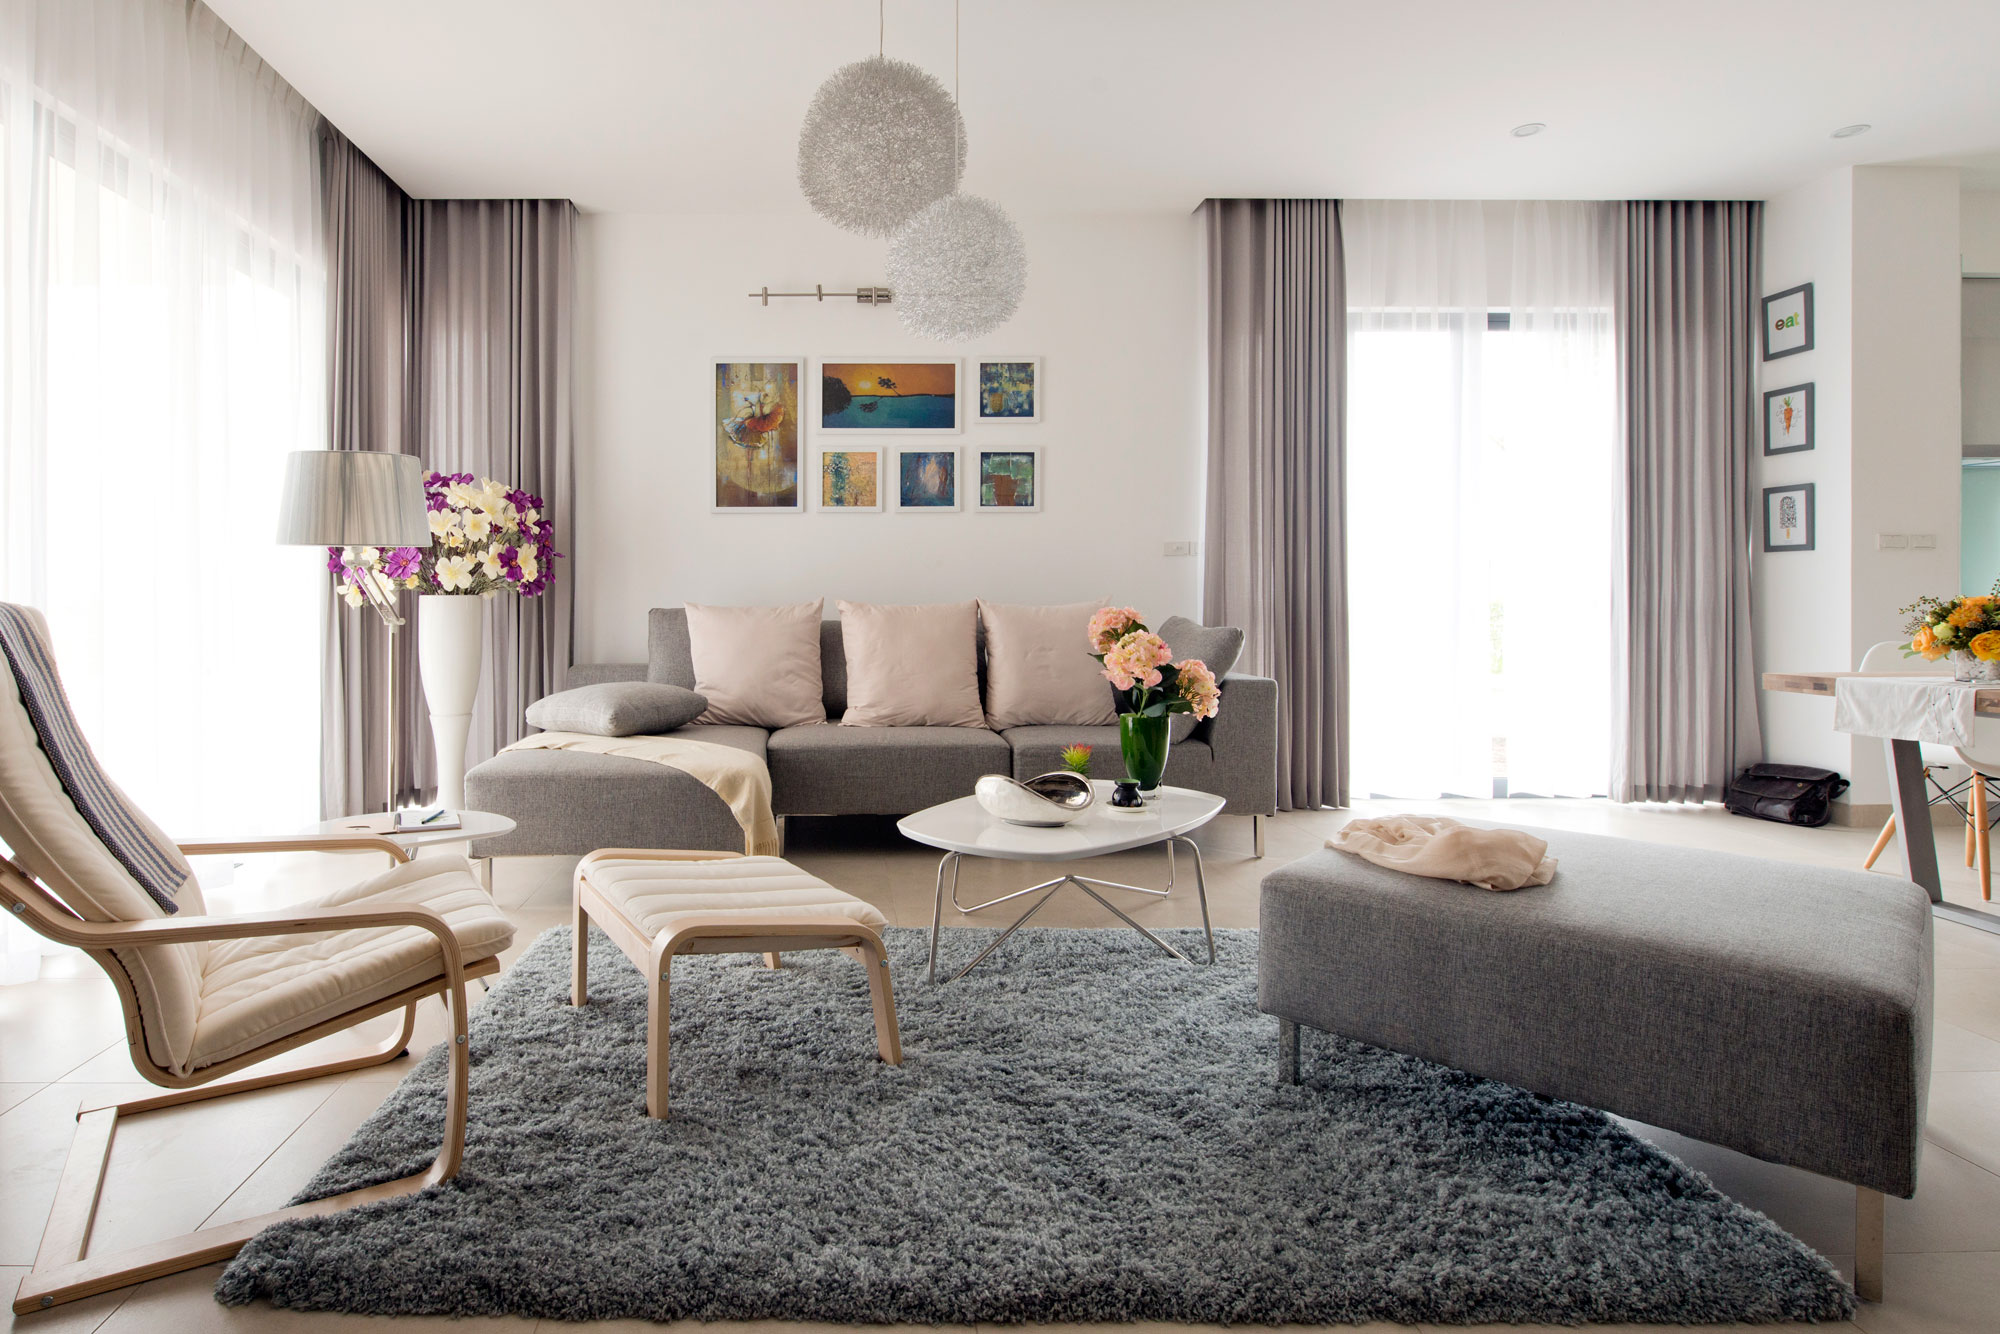 Small Terrace House 03 - 34+ Small Terrace House Interior Design PNG